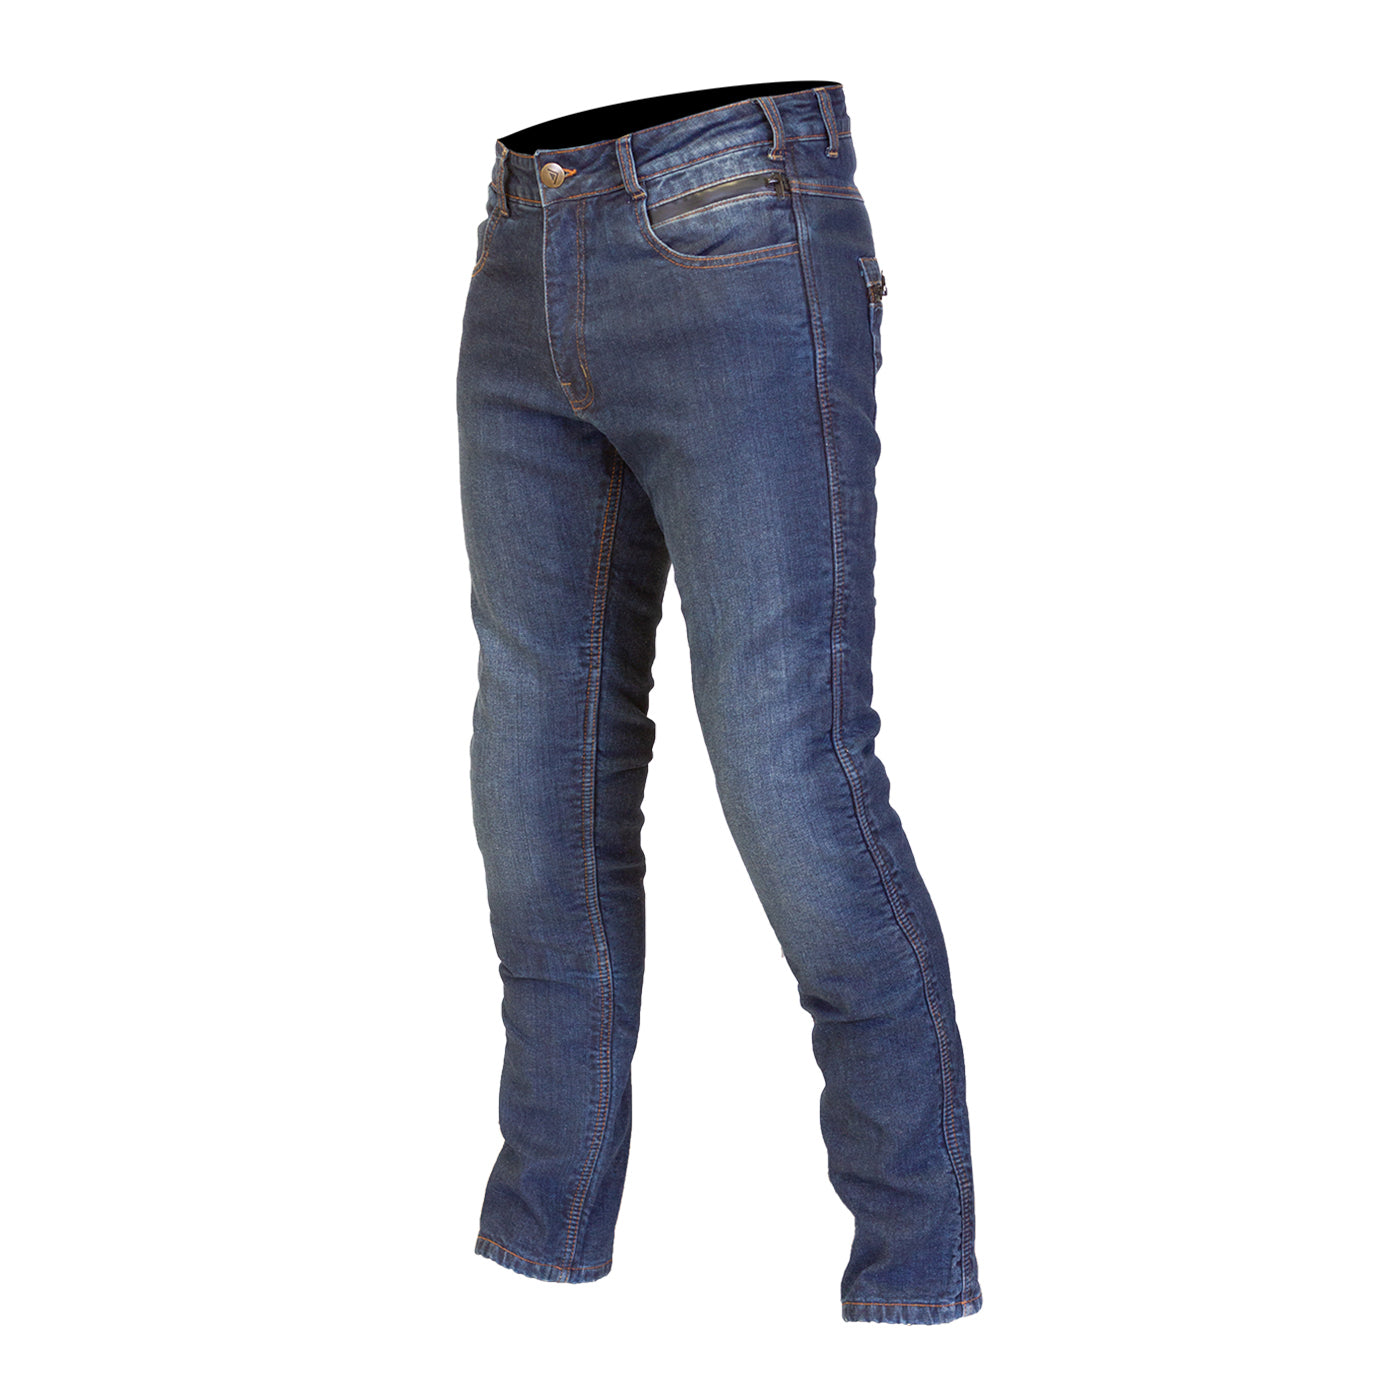 Mason Waterproof Jean-Jeans-Merlin-30-Merlin Bike Gear